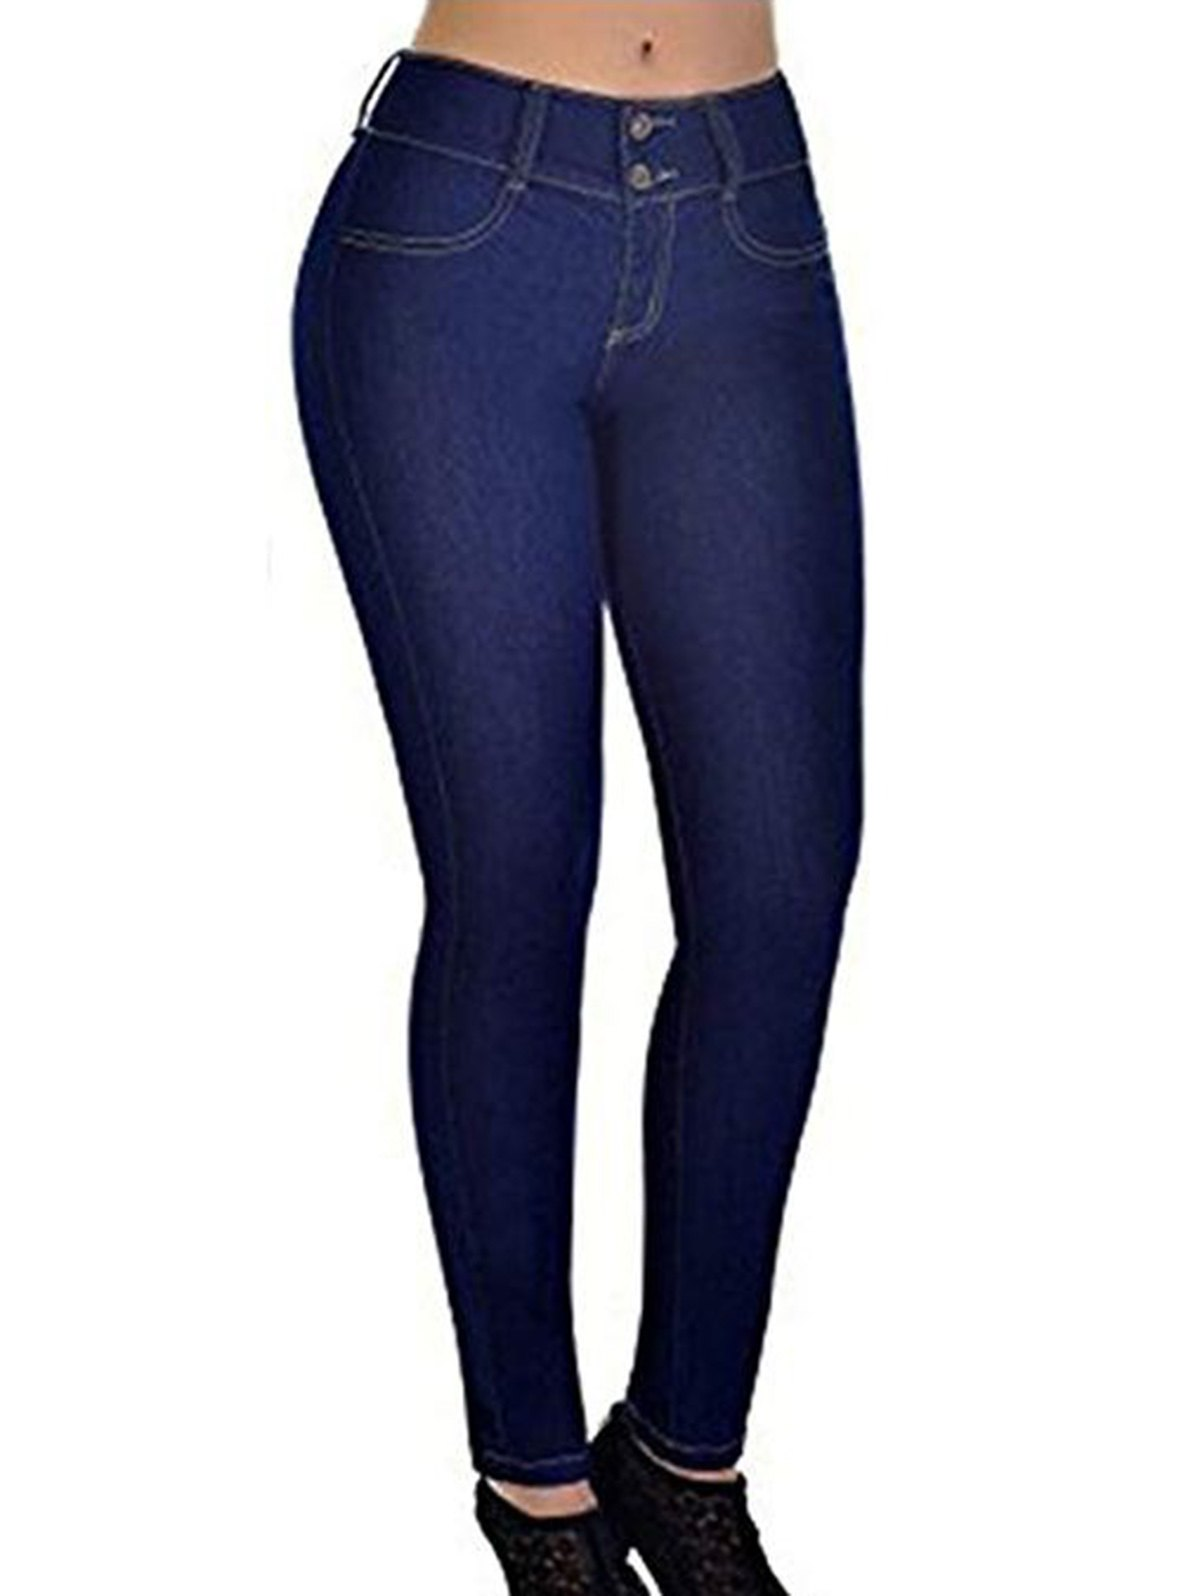 Affordable Womens Casual Jeans Skinny Trendy Stretch Pencil Denim Pants